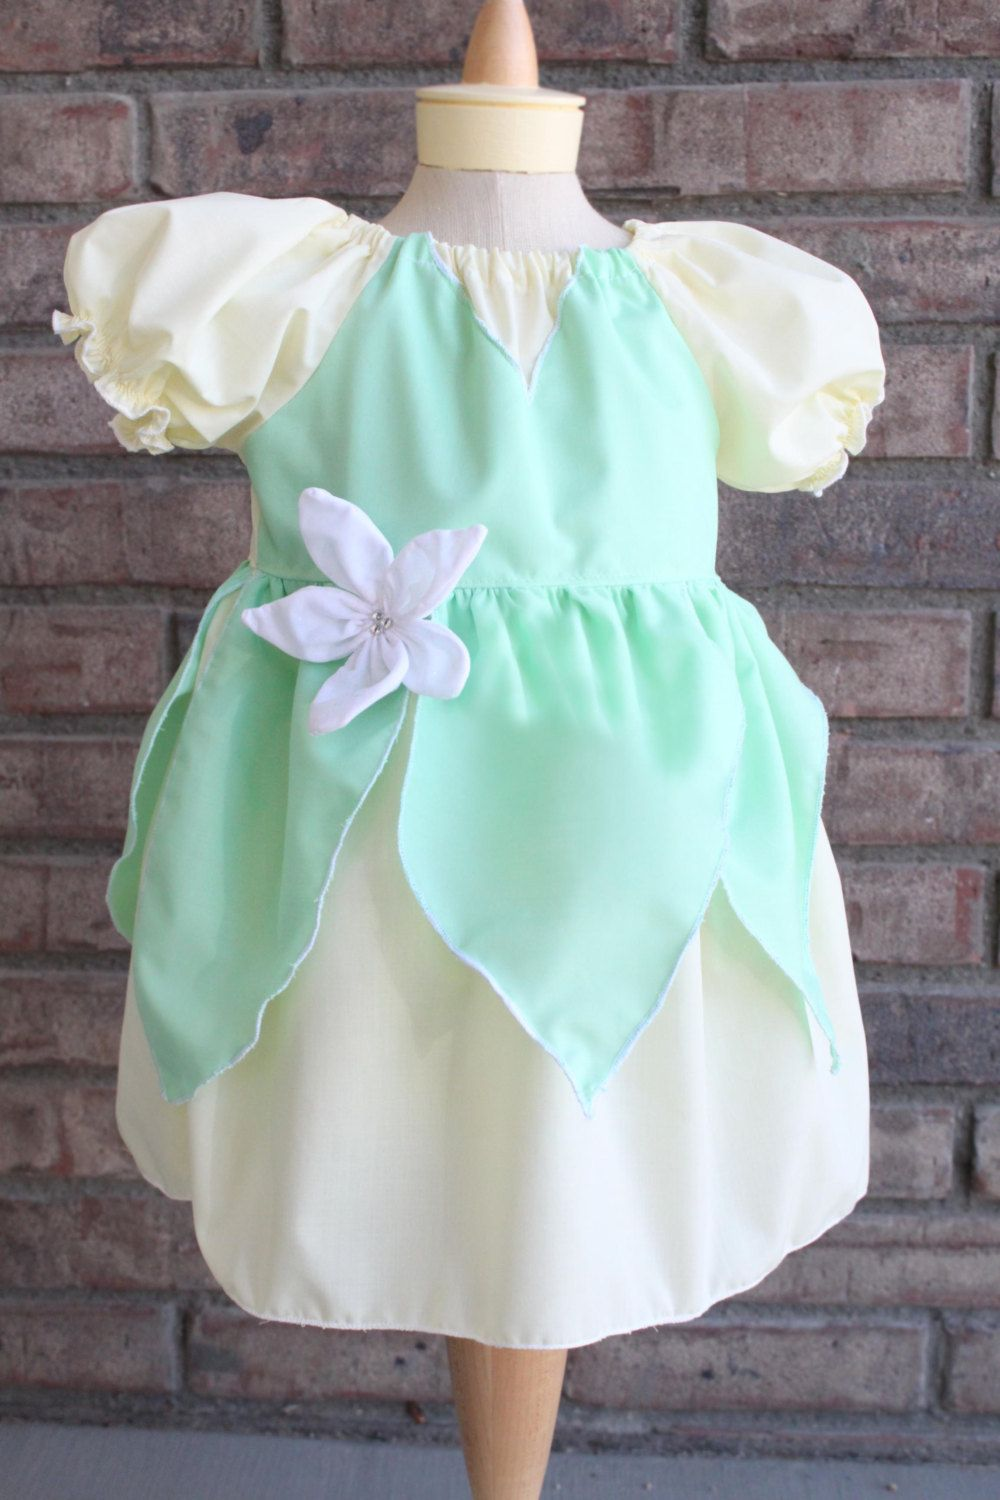 Princess and the Frog Tiana inspired peasant dress 6mos- 3t Custom ...